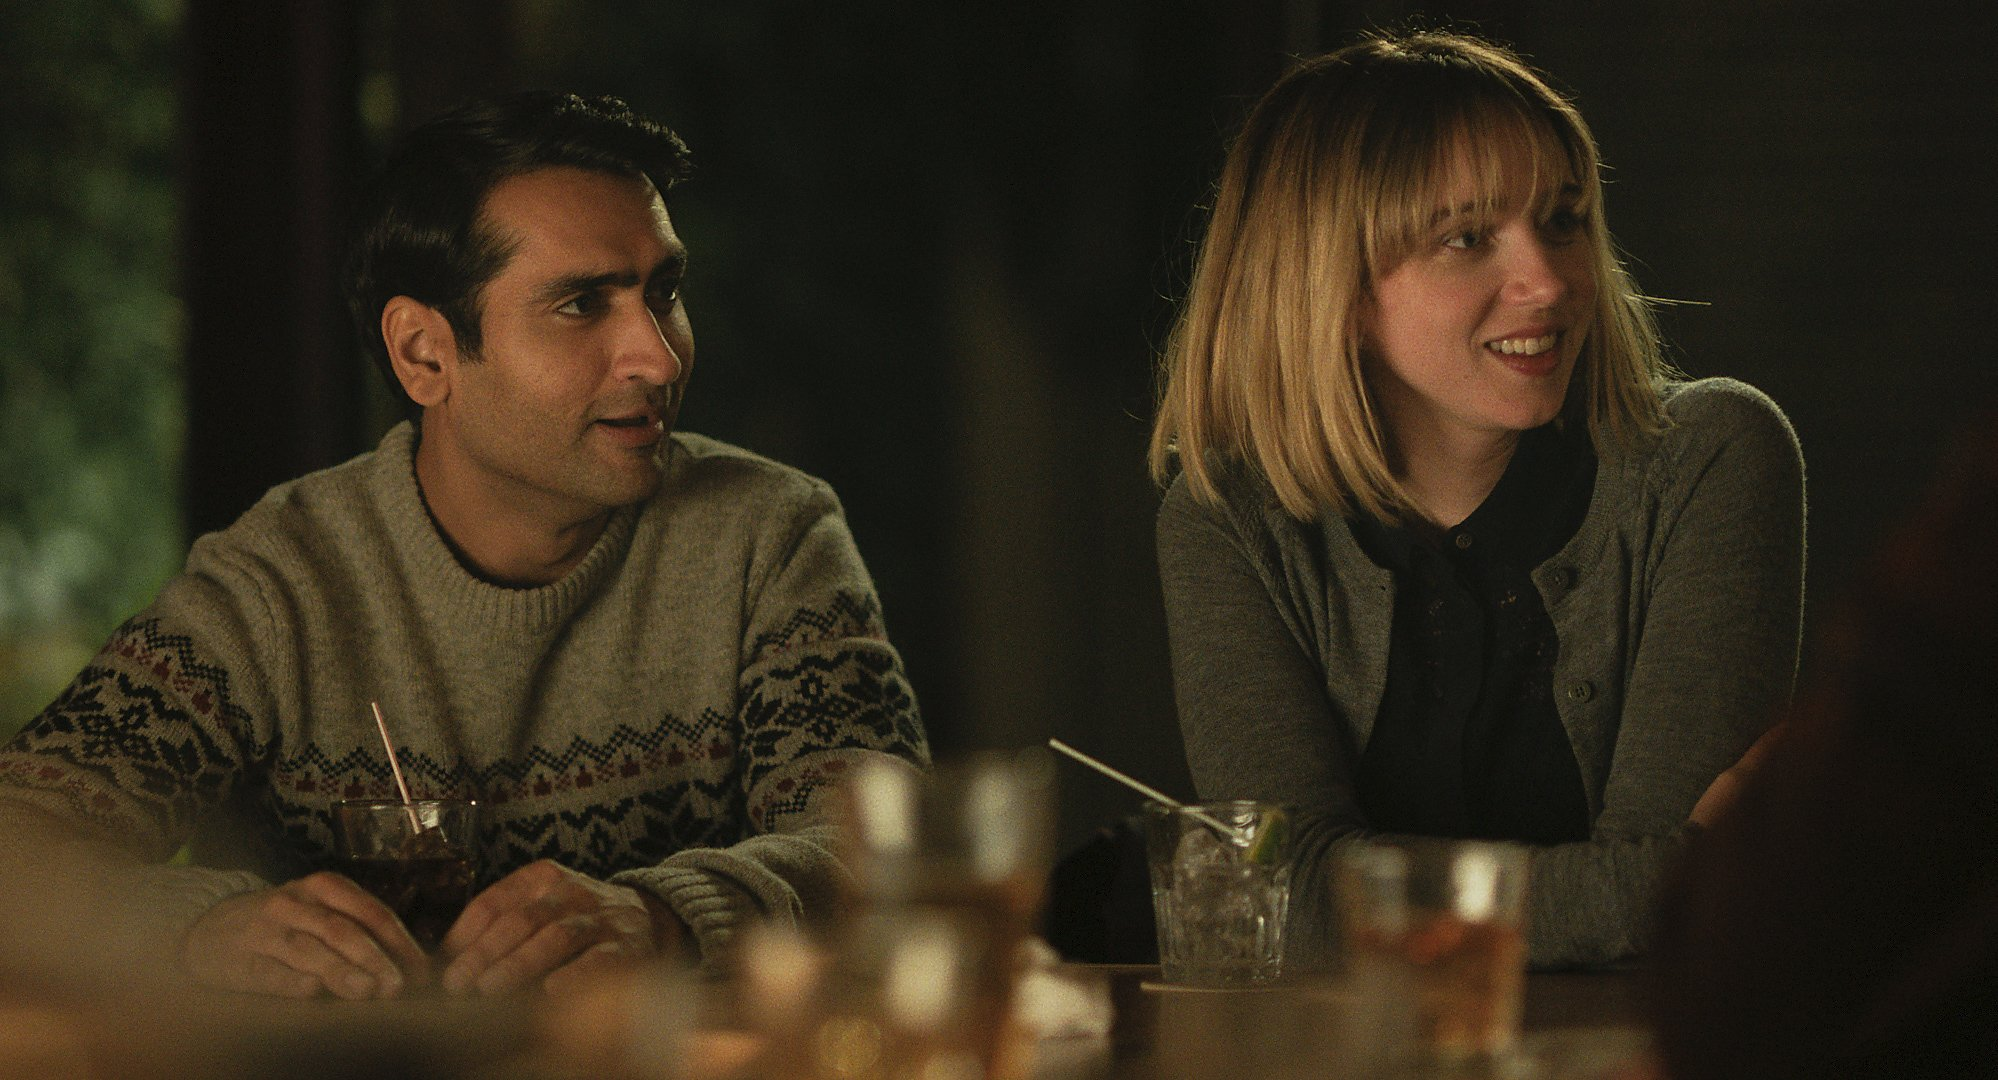 4. THE BIG SICK | Directed by Michael Showalter | Release Date: June 23, 2017    The Big Sick  remains a movie I want to show everyone I know.  Written by the husband and wife team of Kumail Nanjiani and Emily V. Gordon, the film documents their real-life story about dating, breaking up, and struggling with the reality of Emily's sudden and severe lung infection that forces her into a medically induced coma for a period of time. To the couple's credit, the film never panders to its audience, especially when Emily becomes sick. The film does such a wonderful job of setting up the world these two characters inhabit that we are on the journey right along with Kumail and Emily's family, who leave their home in North Carolina, to be with her in Chicago, trying to make up for lost time.  Witty, funny, endearing, bittersweet, honest and authentic. Initially, we are observers who then become invested in these characters and their lives. We bond with their struggles, challenges, and root for their wins and feel bad for their losses. The ensemble is wonderfully cast, Holly Hunter and Ray Romano, as Emily's parents, are terrific in the film's second half, Kazan shines in the first hour. Nanjiani steers us through both halves of the film, in a long overdue breakout performance.  Bottom line: I simply did not want to let these characters go when the movie ended.  The Big Sick  is a movie I'm going to love for a long, long time.